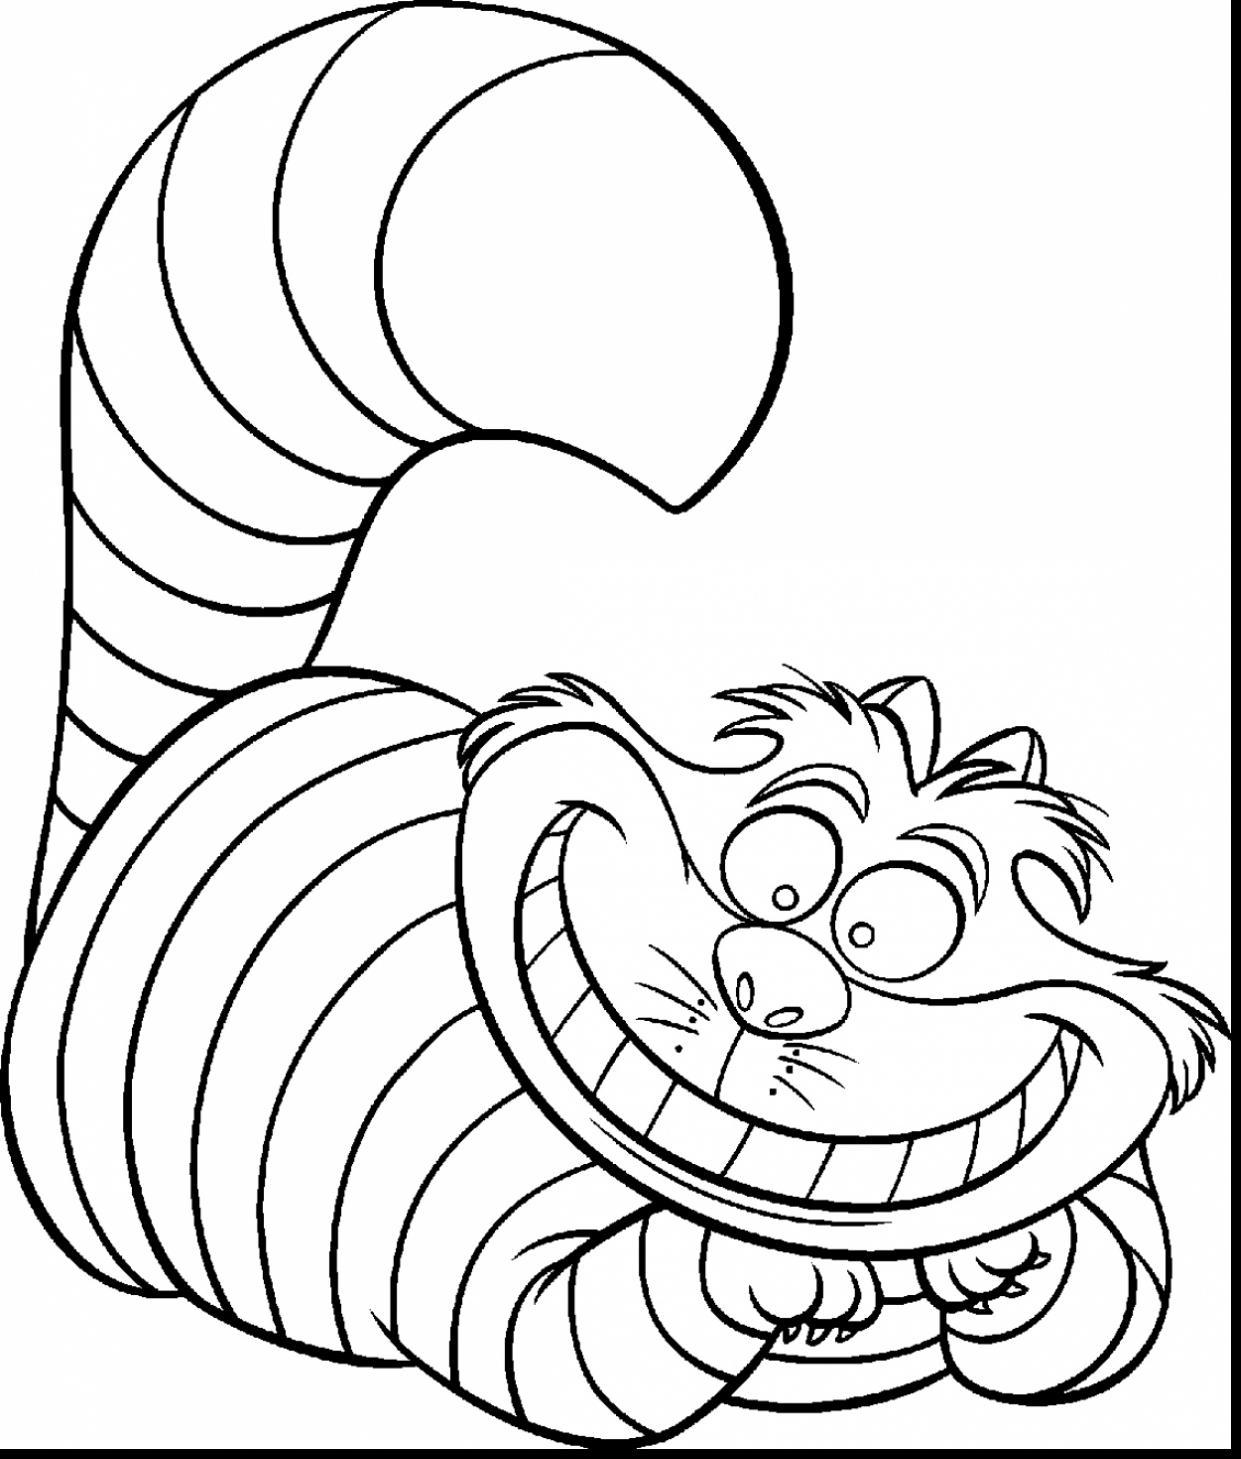 1241x1459 Incredible Alice Wonderland Cheshire Cat Coloring Pages